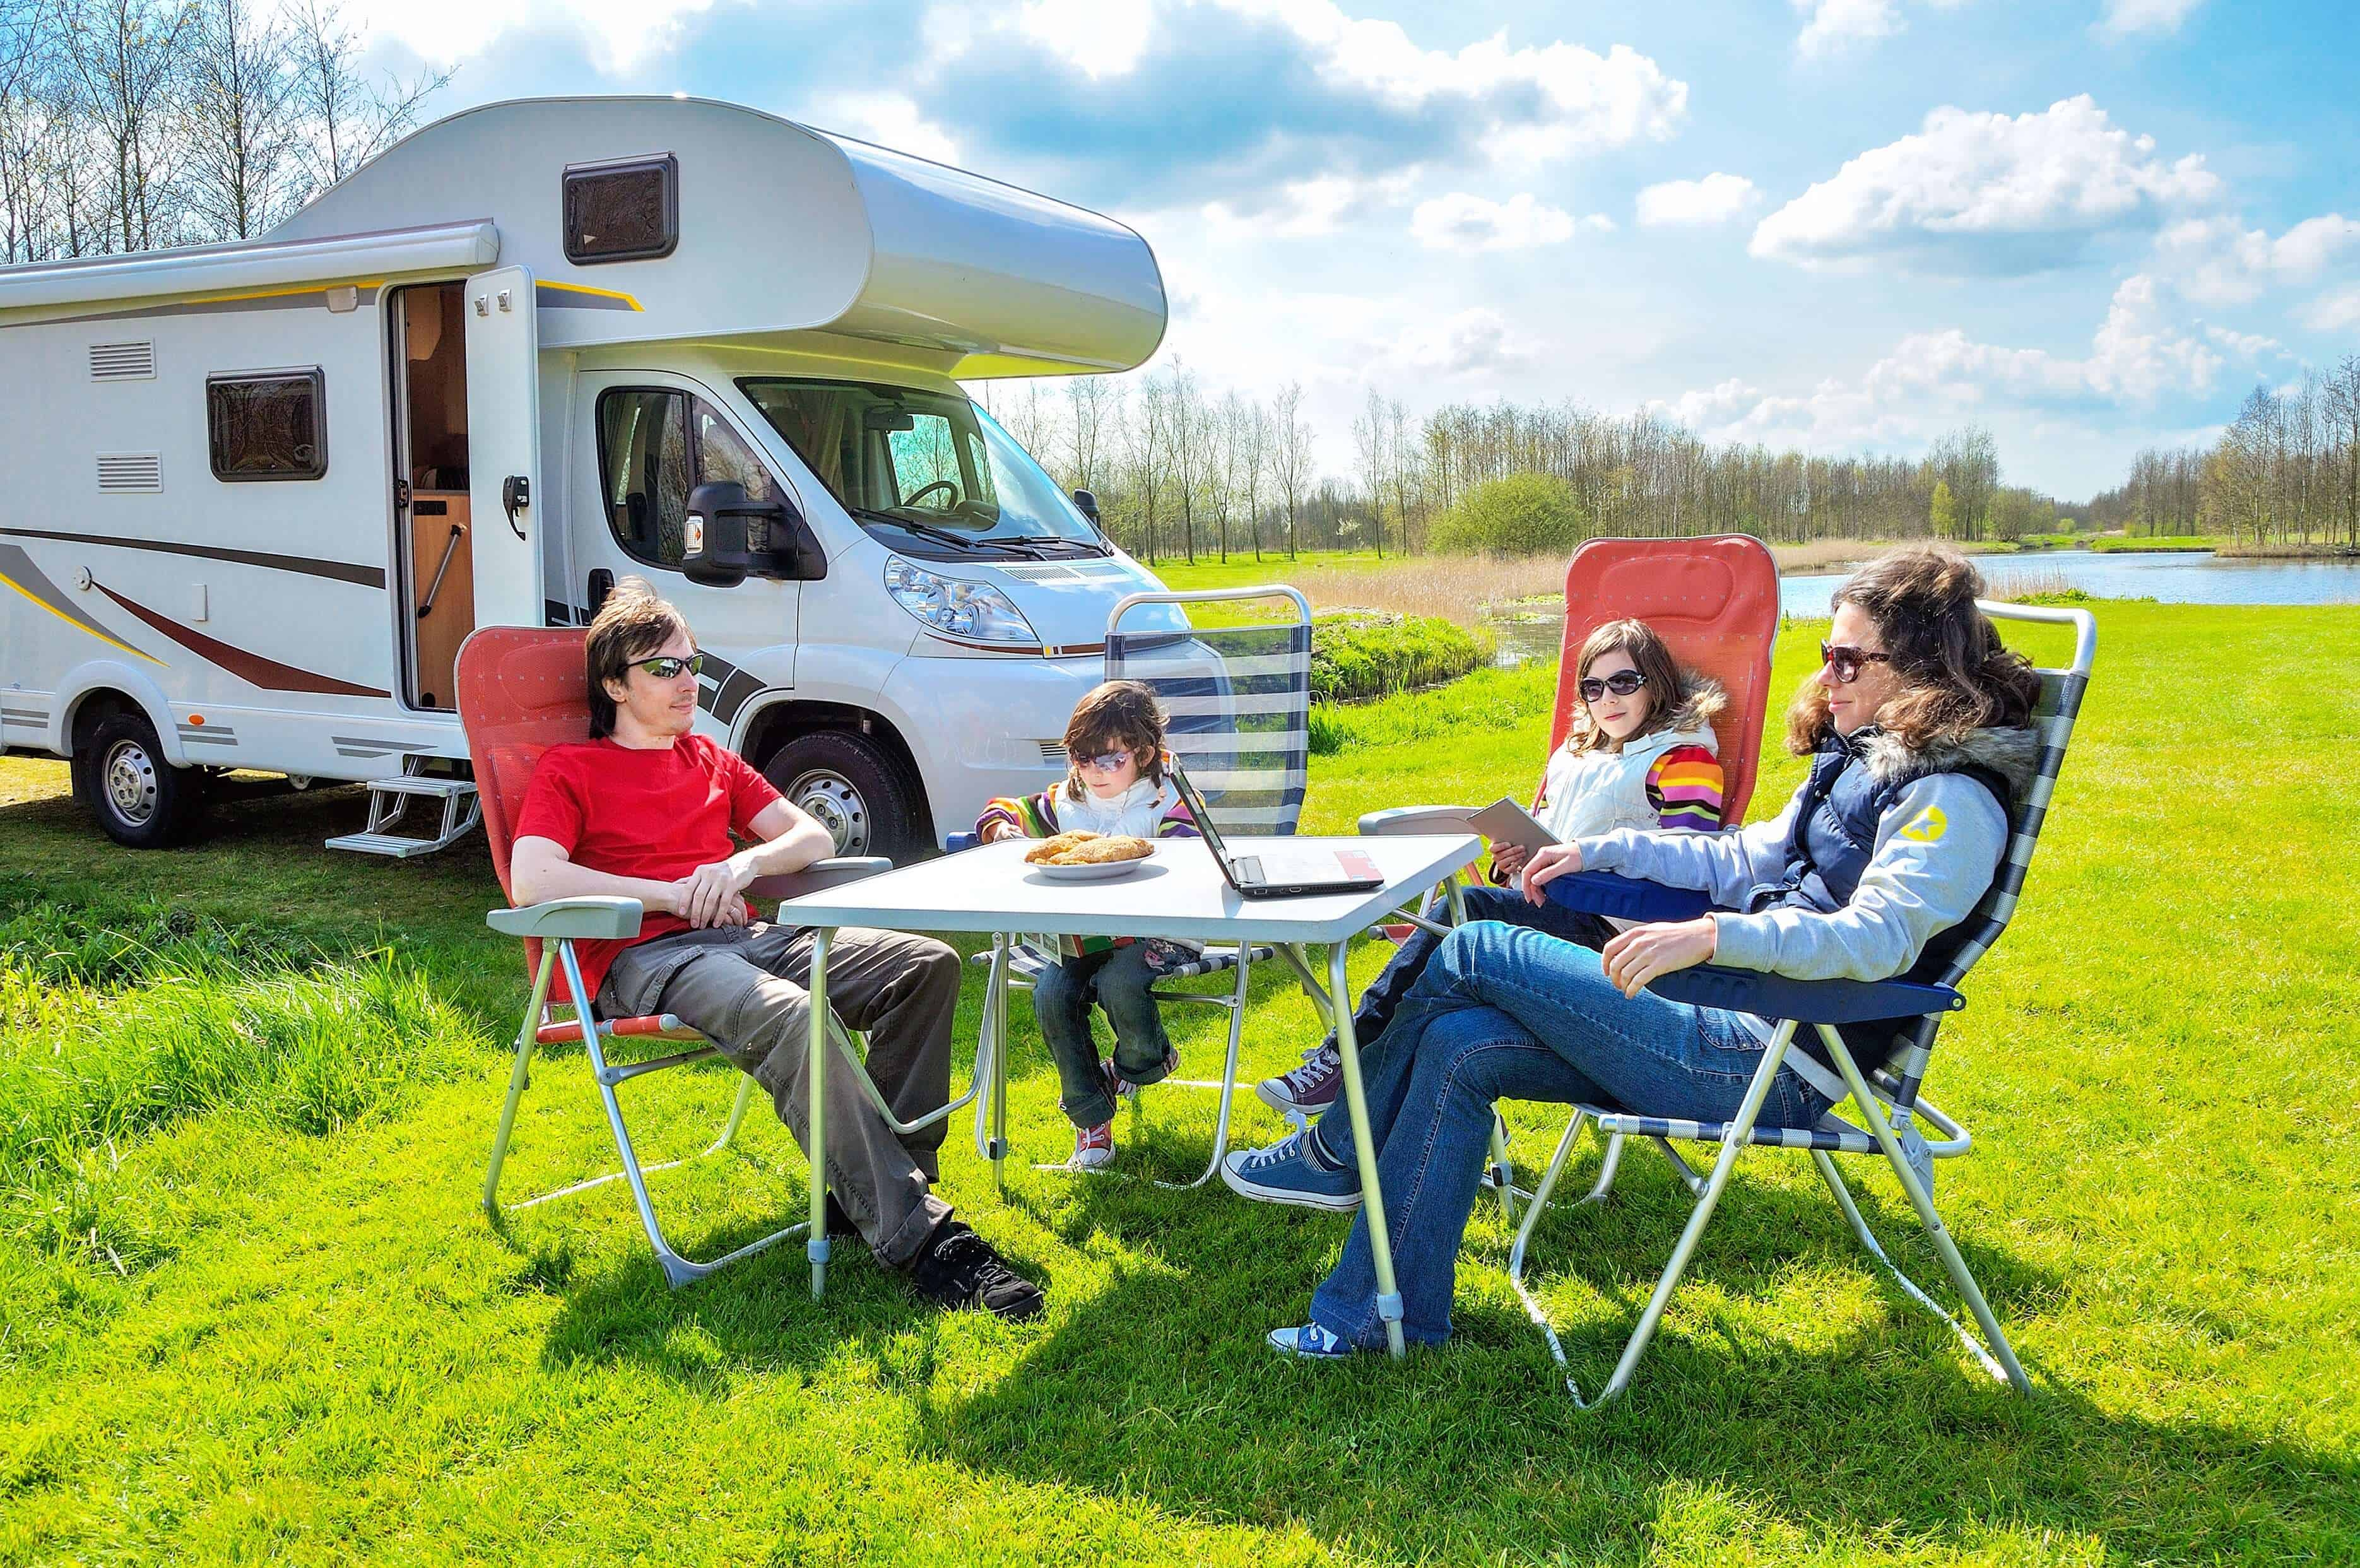 Couple sitting in front of RV